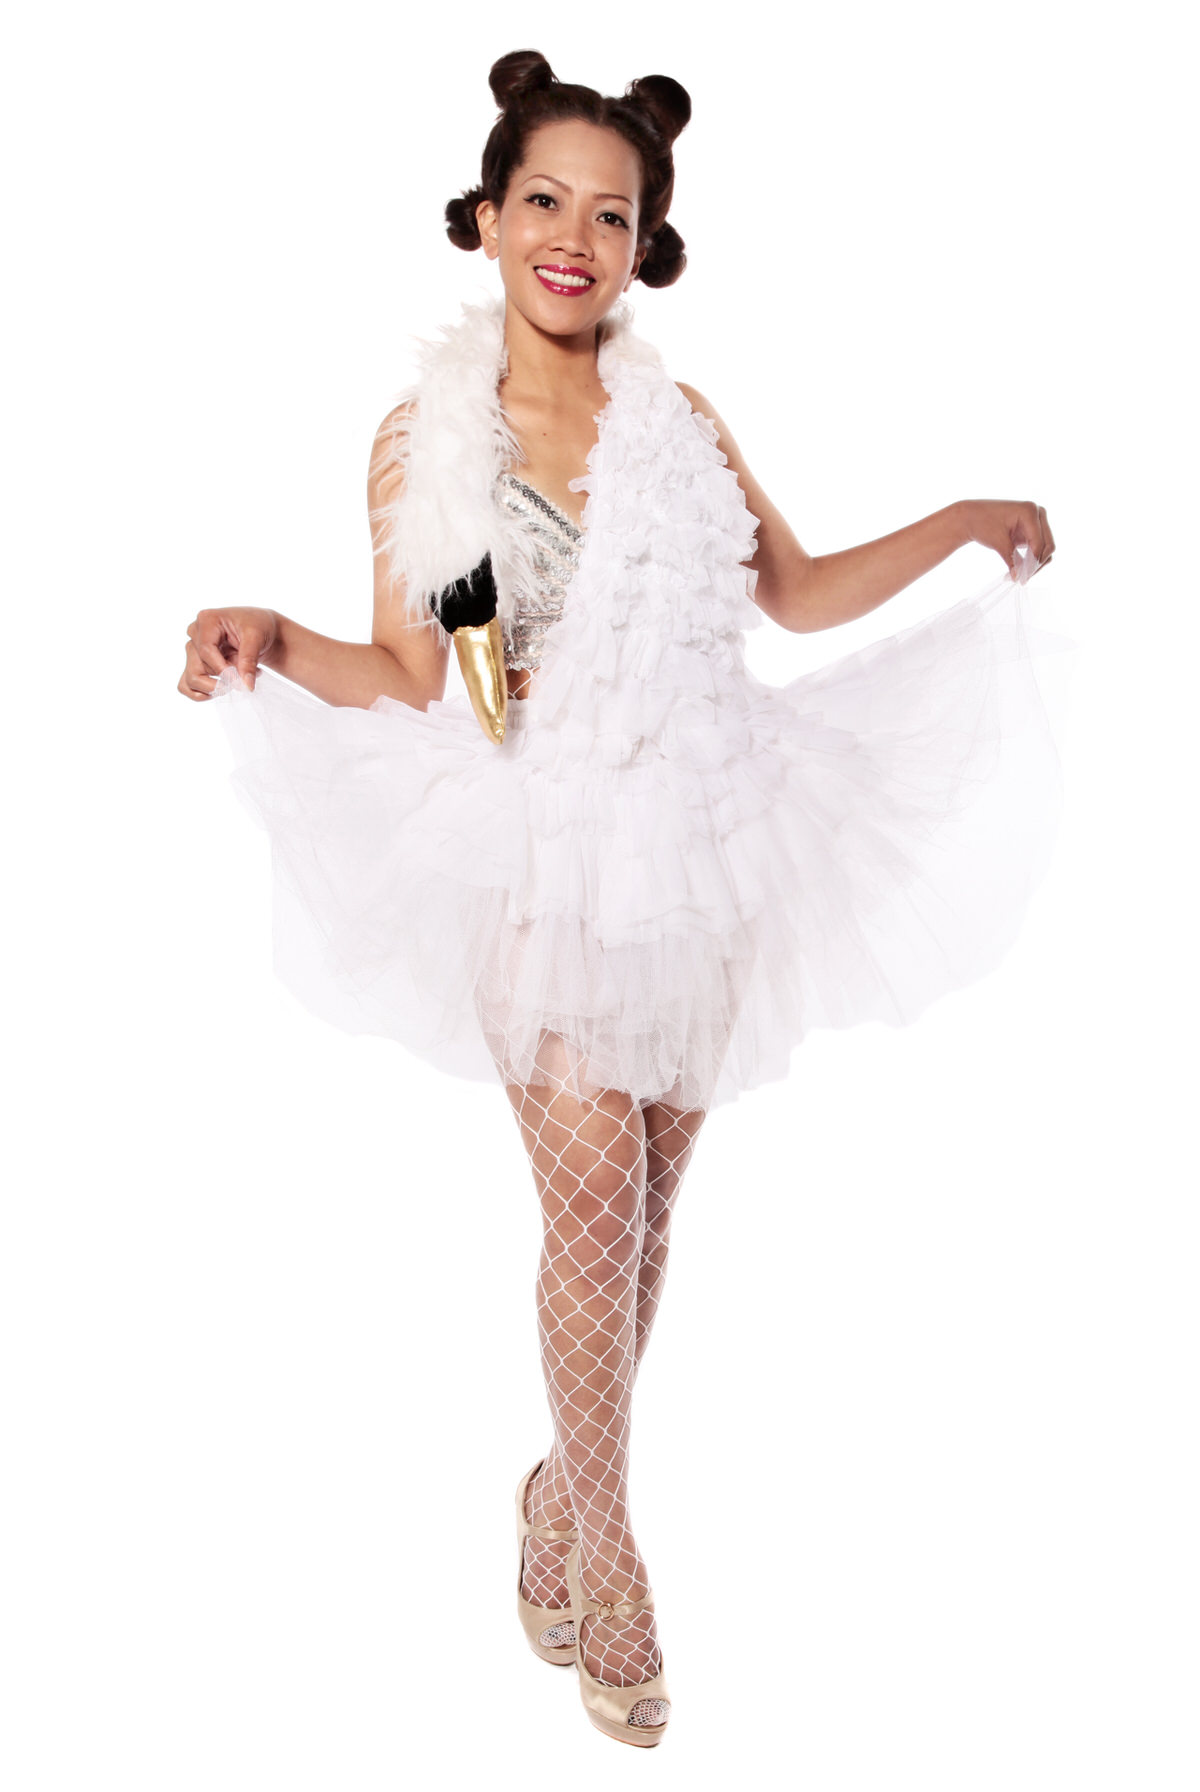 SWAN DRESS BJORK STYLE COSTUME W SILVER SEQUIN TOP